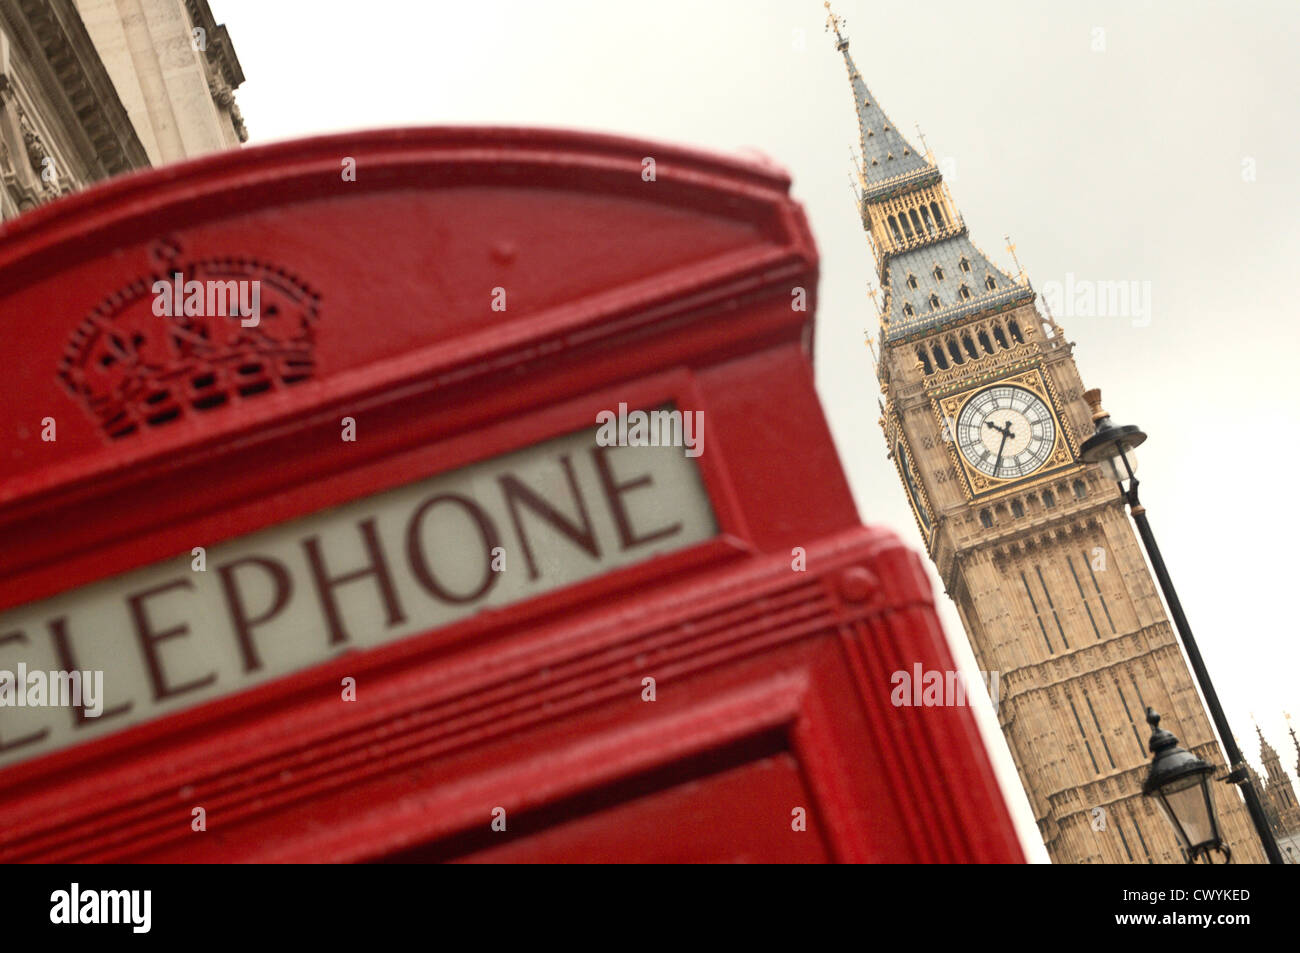 Big Ben and red telephone box, London, England, Great Britain, Europe - Stock Image